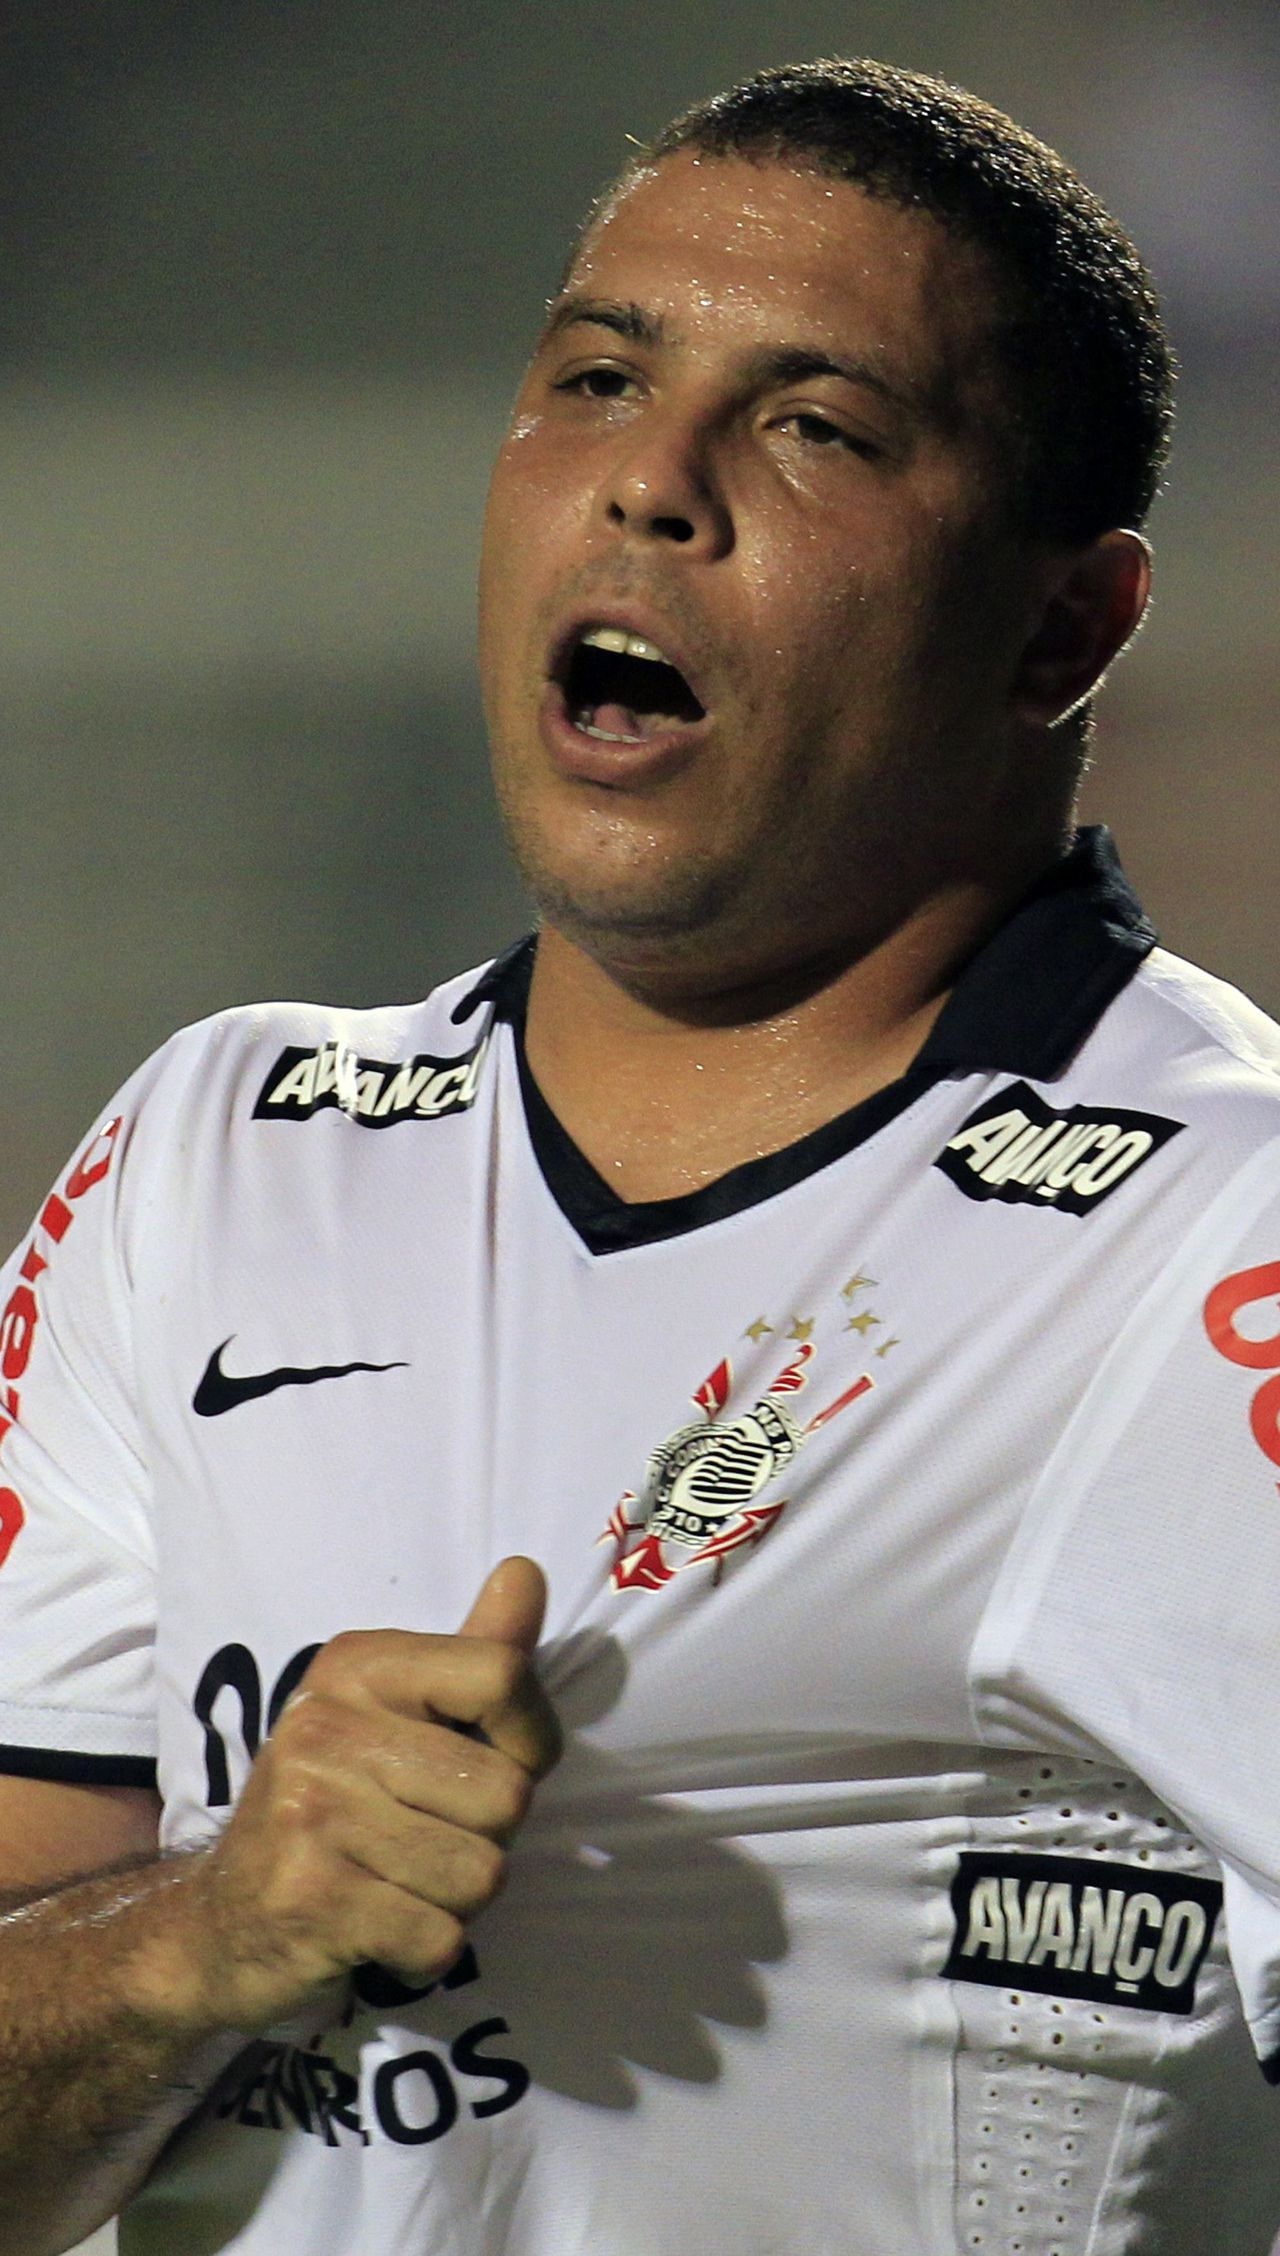 Ronaldo of Brazil's Corinthians reacts during their Copa Libertadores soccer match against Colombia's Deportes Tolima in Sao Paulo in this January 26, 2011 file photo. Former Brazil striker Ronaldo will announce his retirement from soccer on February 14, 2011, he told Brazilian newspaper Estado de Sao Paulo on February 13, 2011. The 34-year-old three-time world player of the year has a contract with Corinthians until the end of 2011 but is bringing his retirement forward after the team's shock early elimination from the Libertadores Cup and violent protests from fans. REUTERS/Paulo Whitaker/Files (BRAZIL - Tags: SPORT SOCCER)